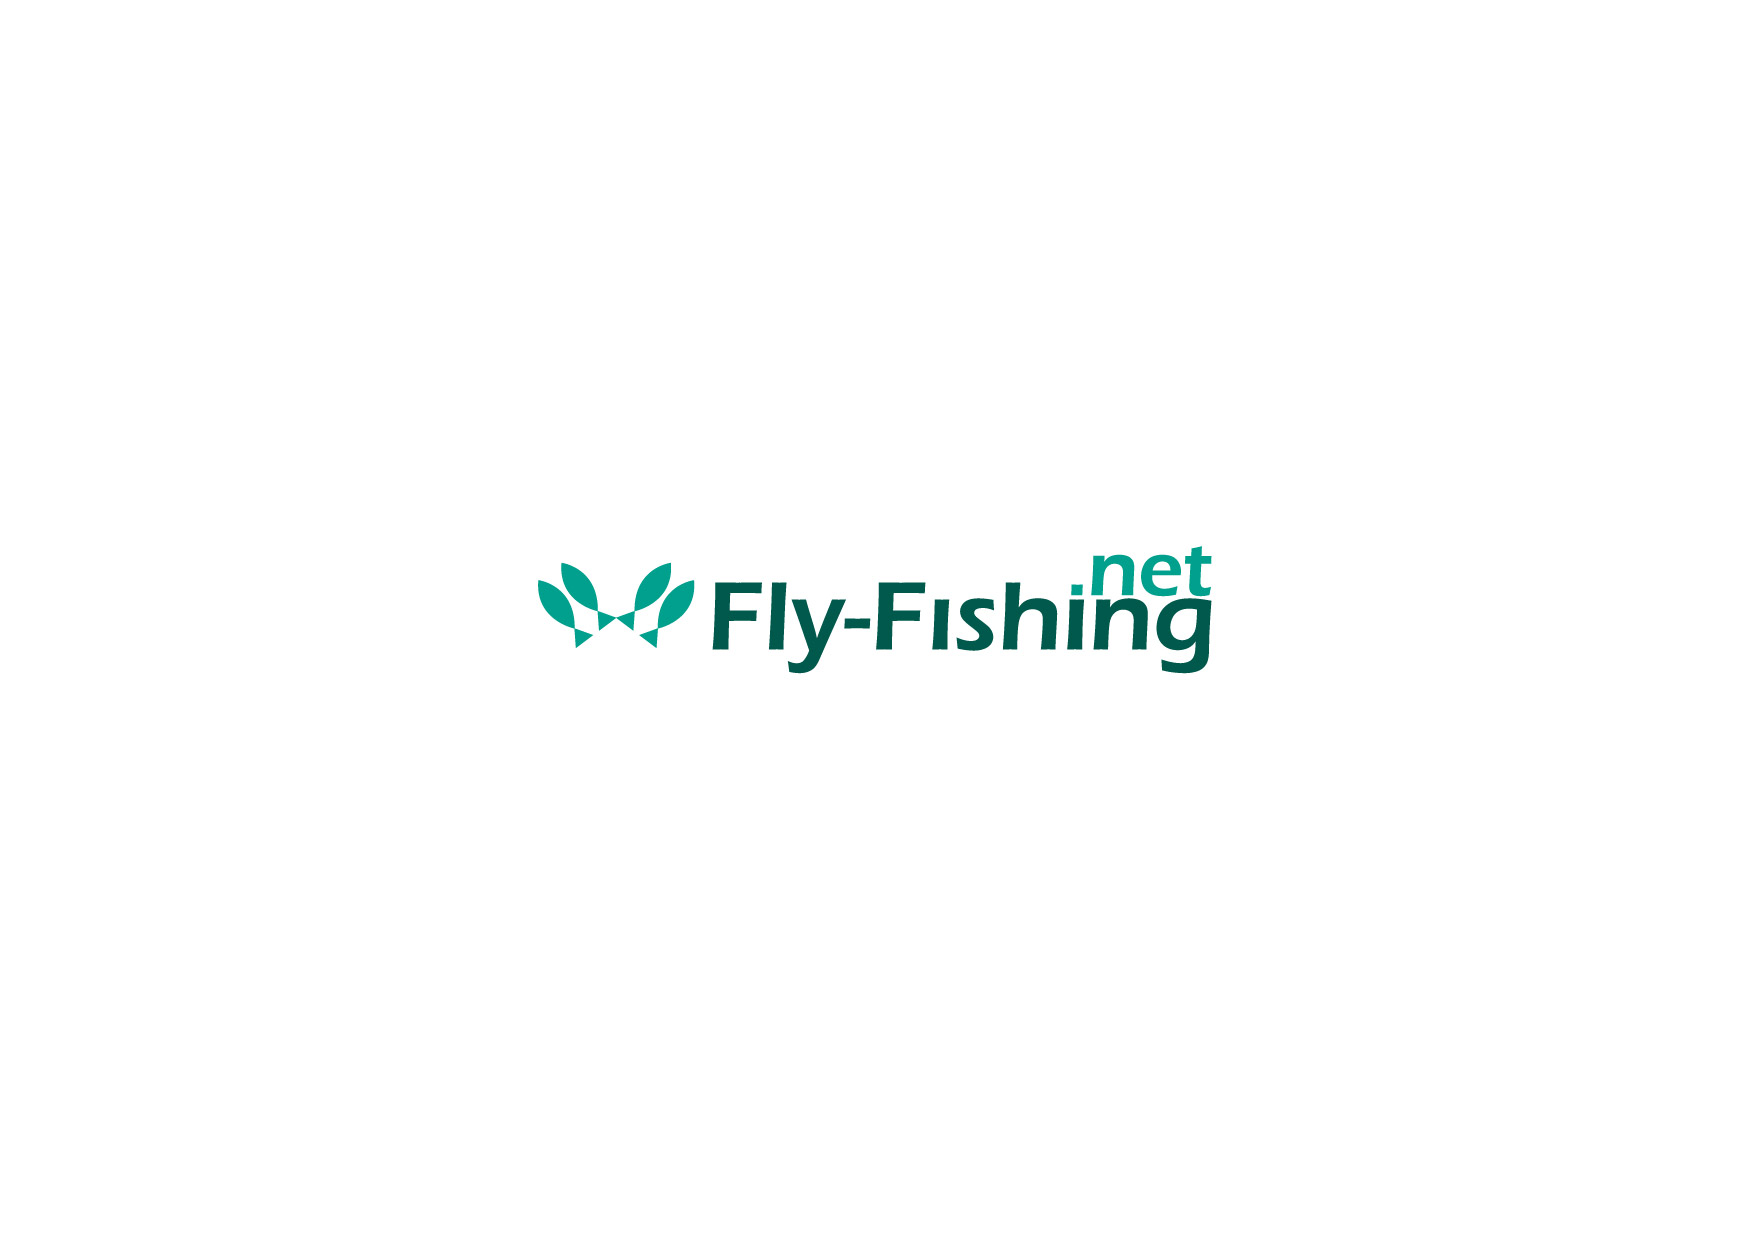 Logo Design by Osi Indra - Entry No. 63 in the Logo Design Contest Artistic Logo Design for fly-fishing.net.